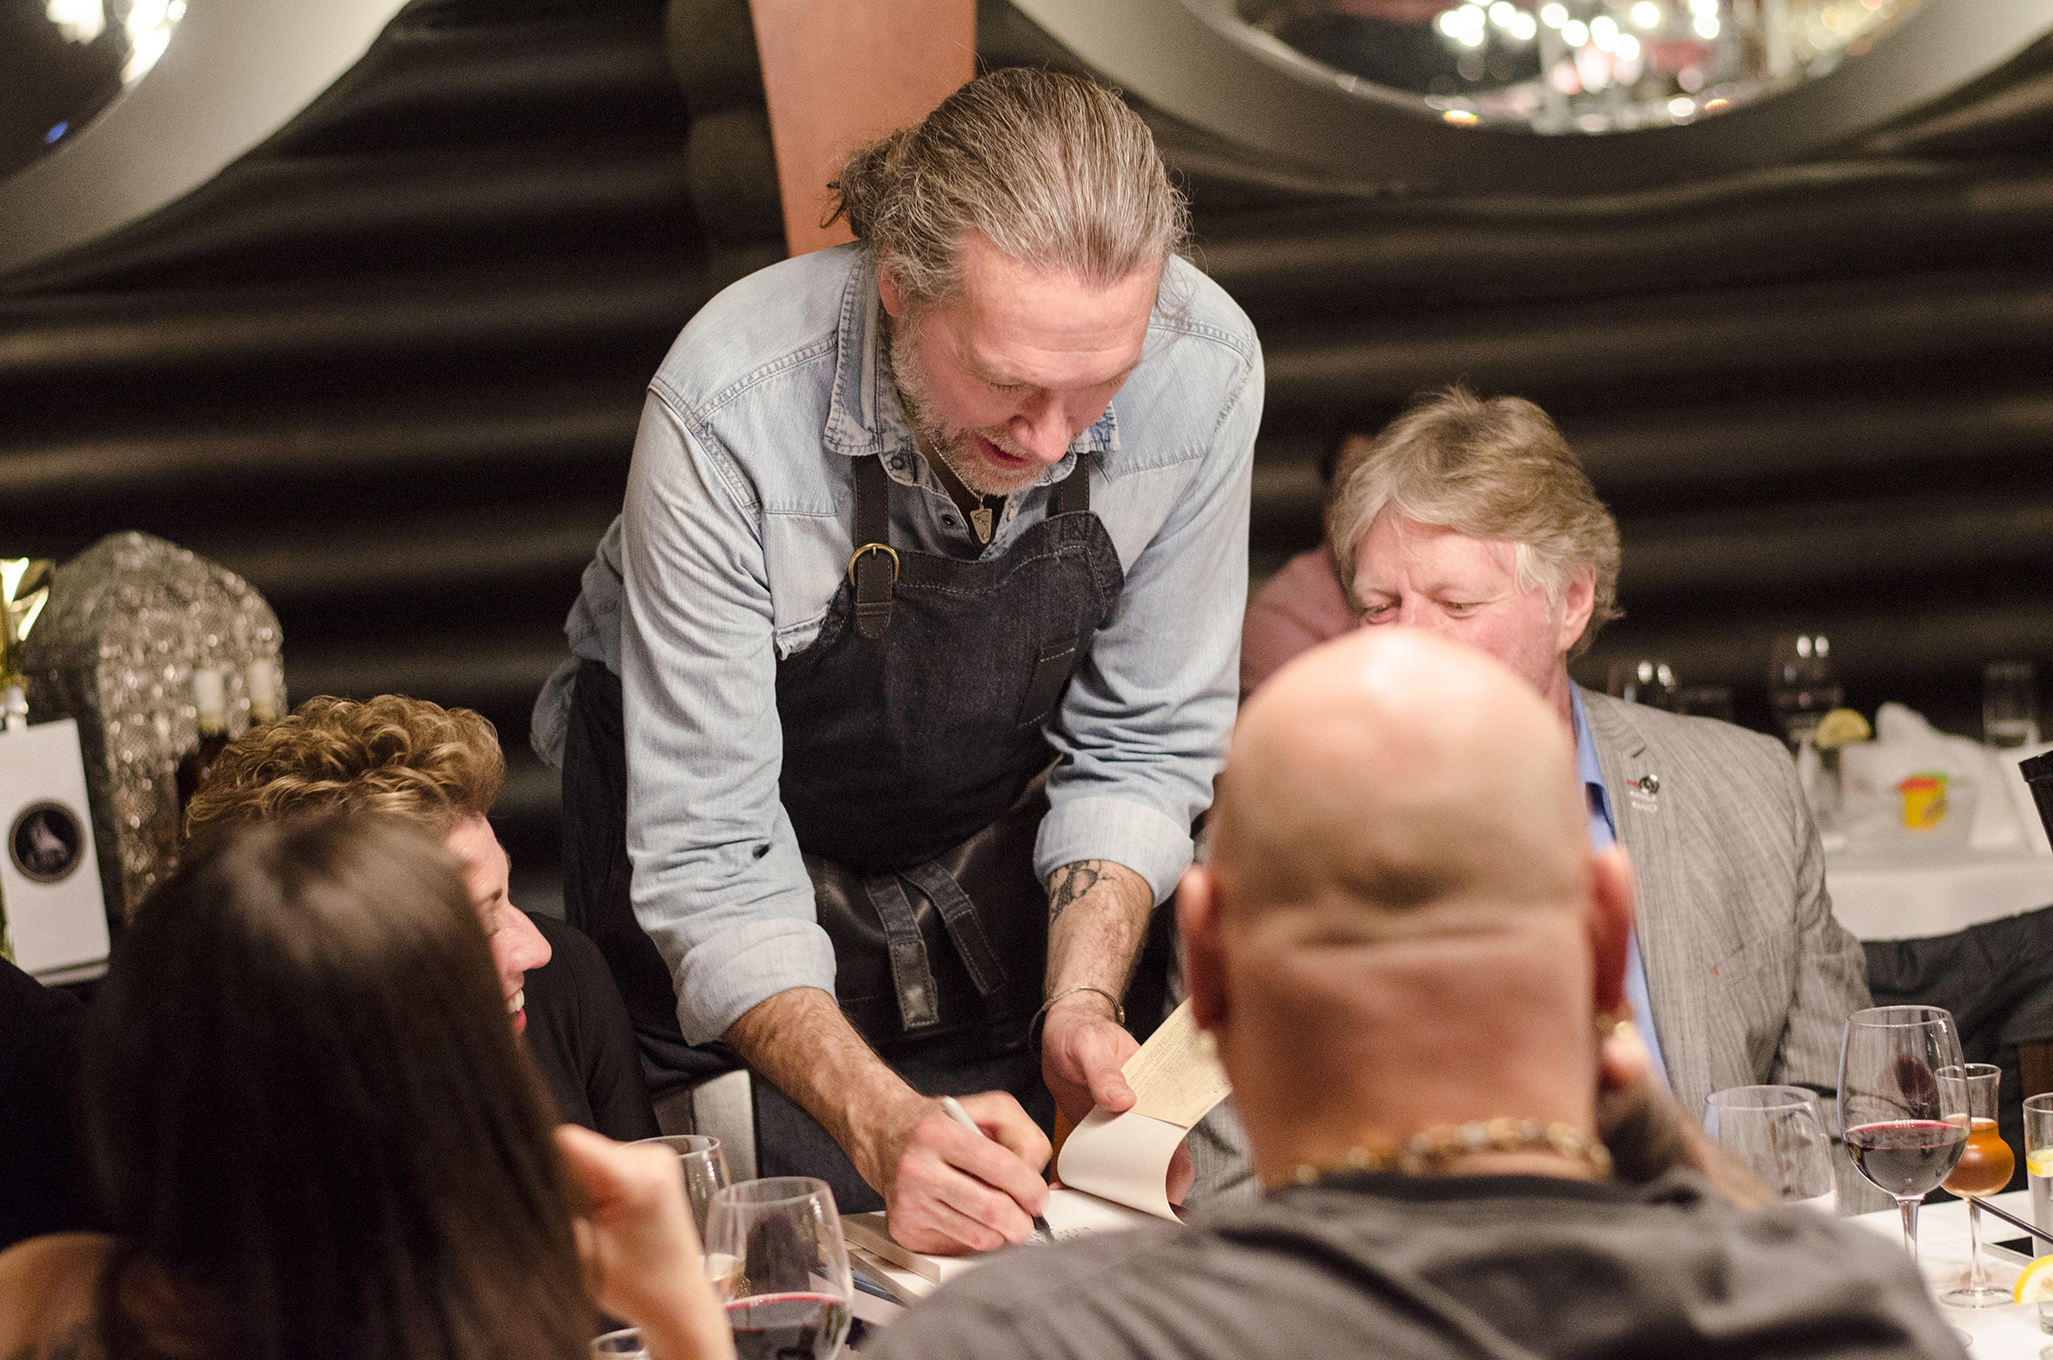 Chef Michael Smith mingled throughout the evening and signed cookbooks.